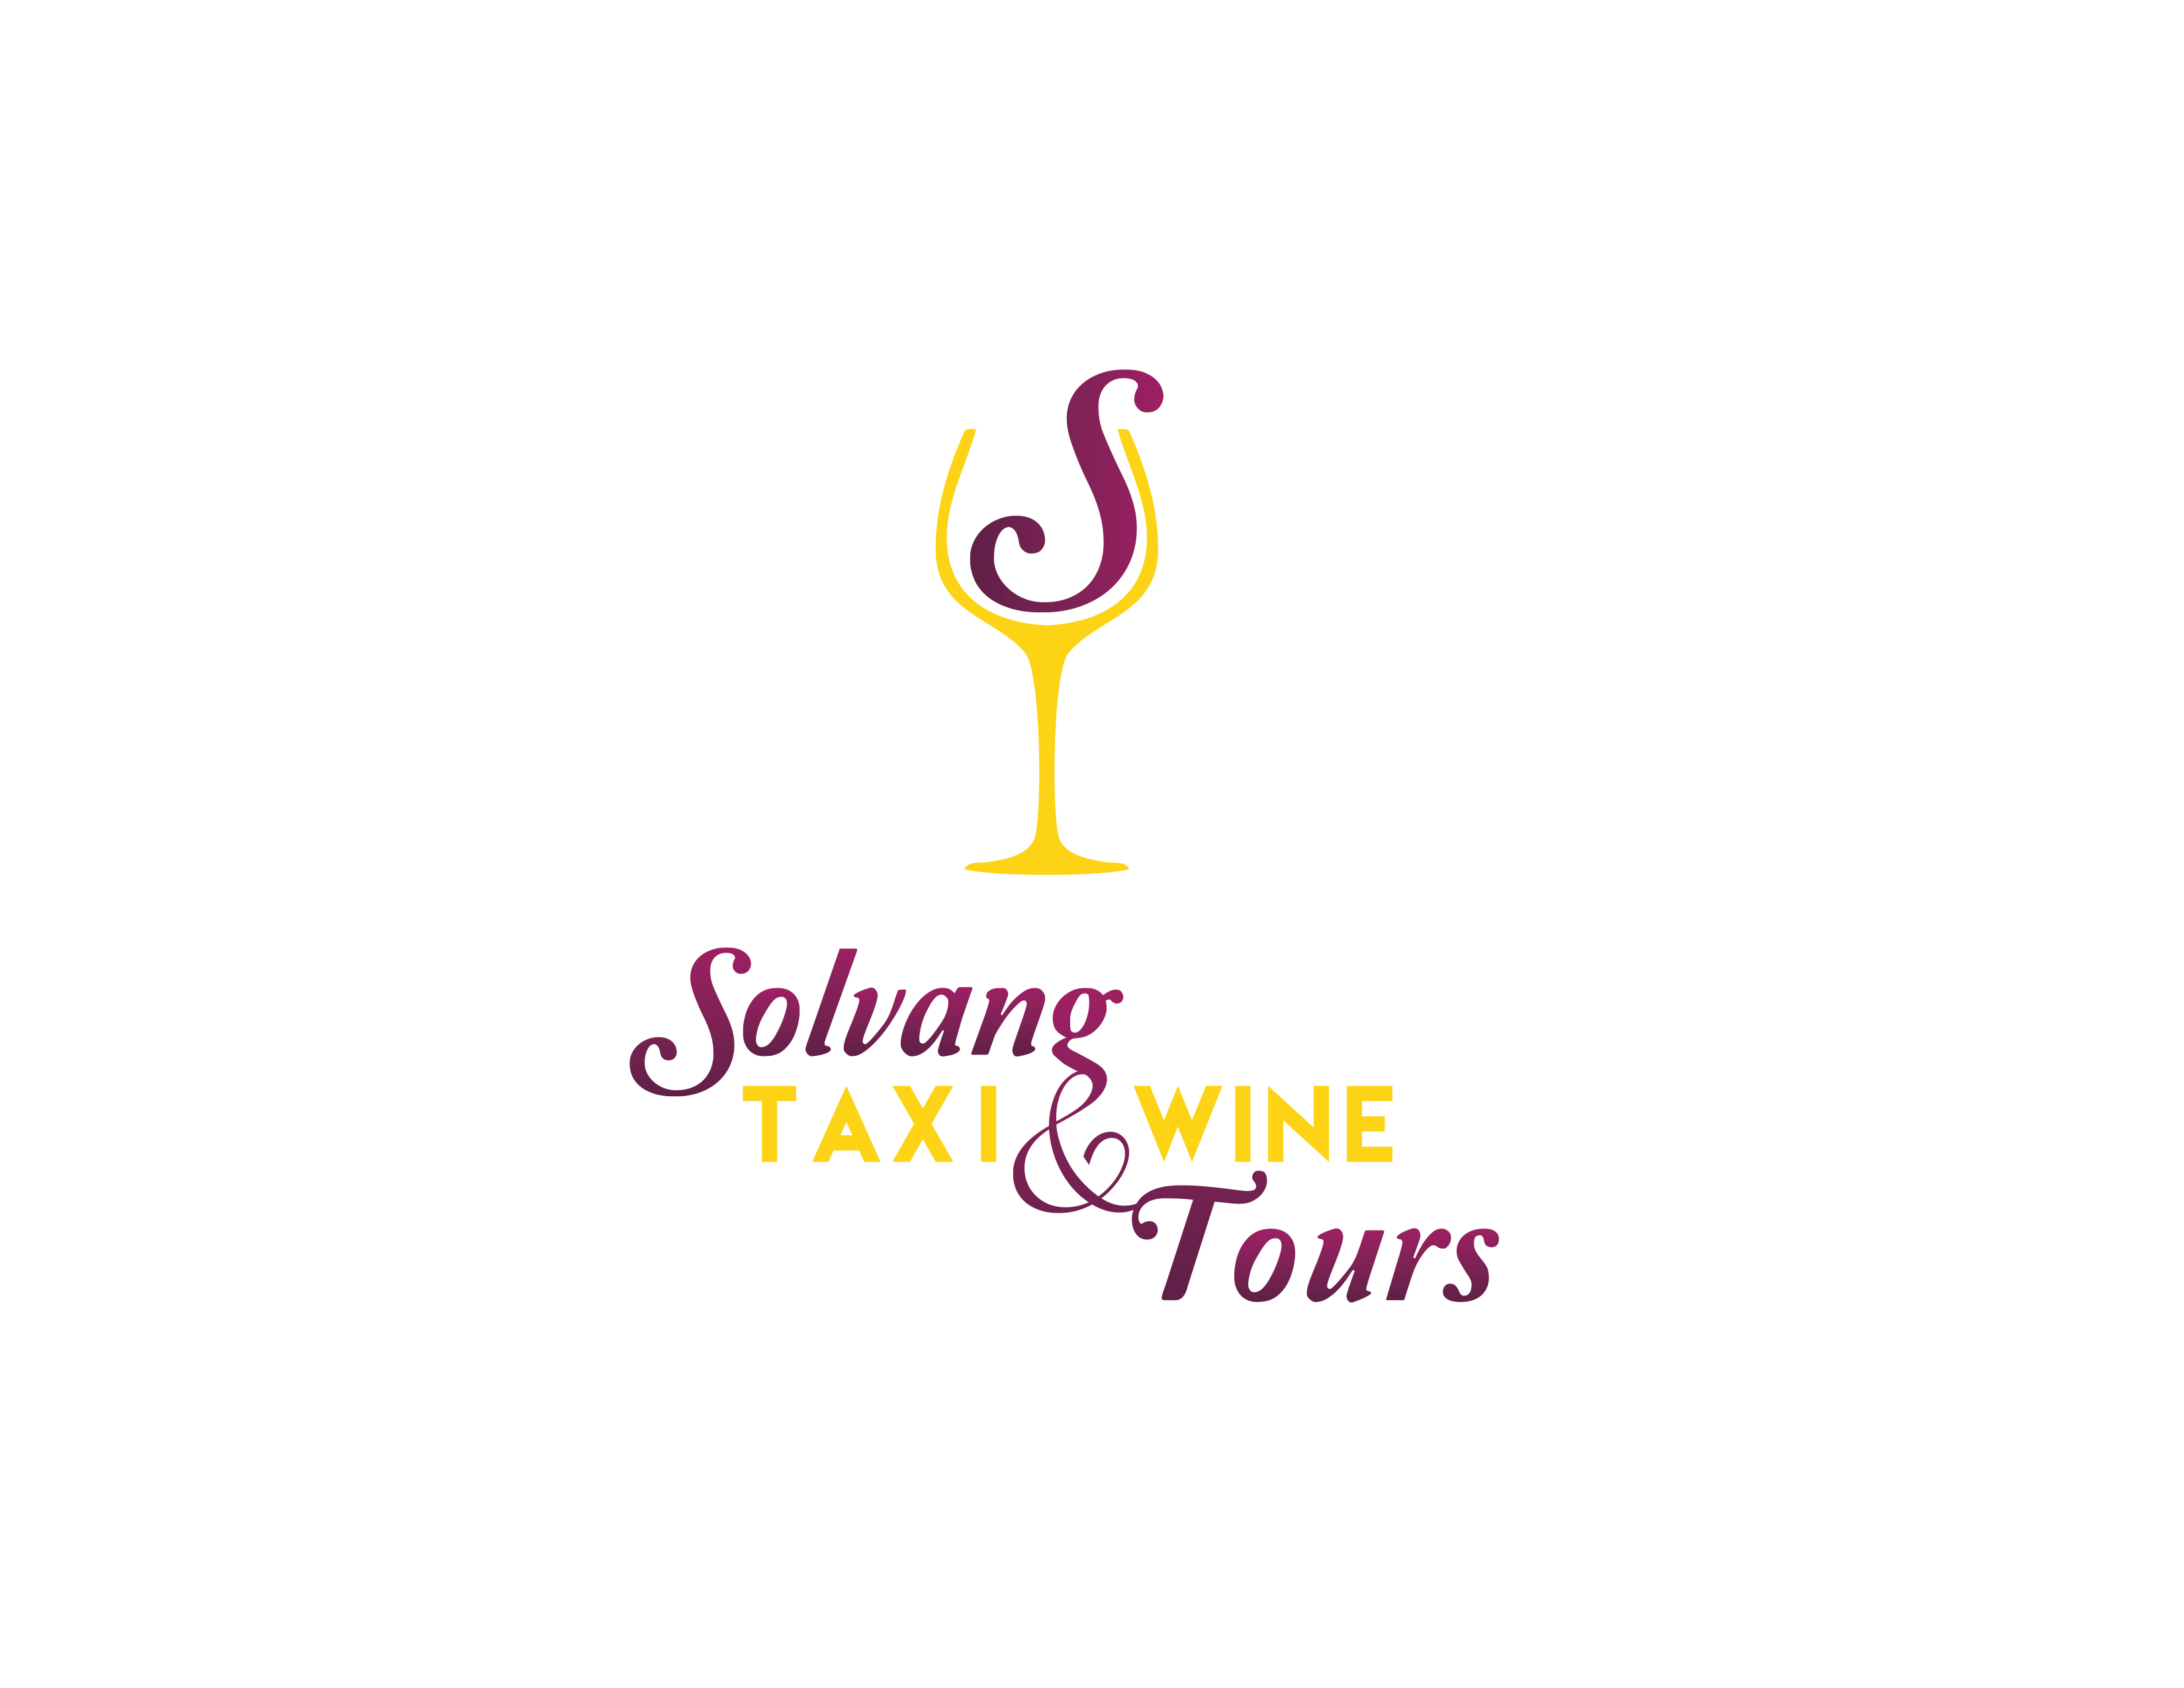 Solvang Taxi & Wine Tours